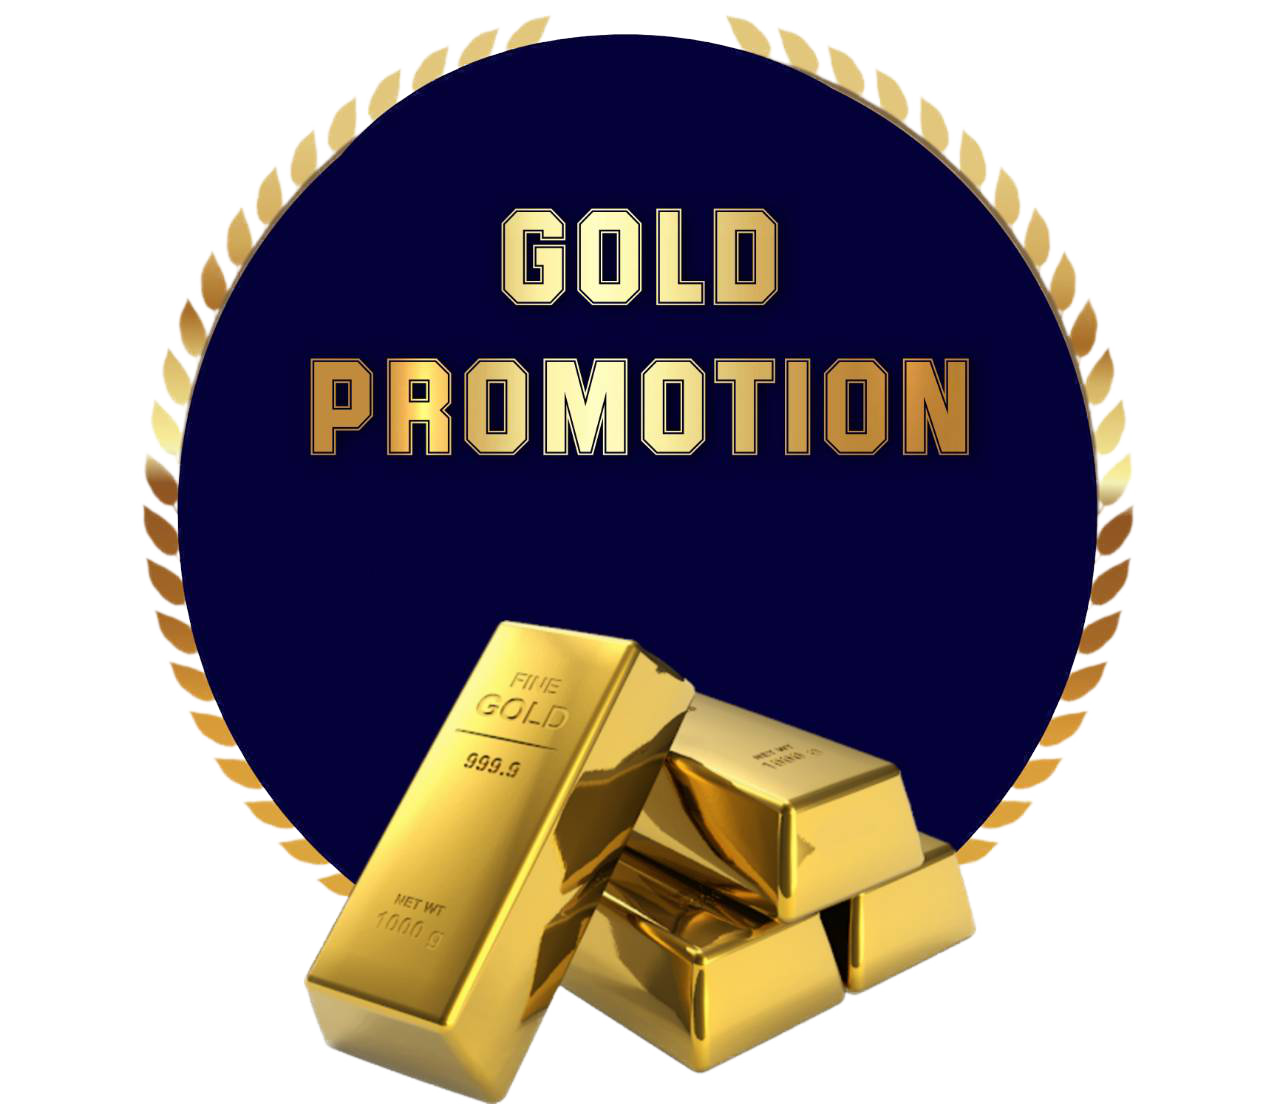 Gold Promotion